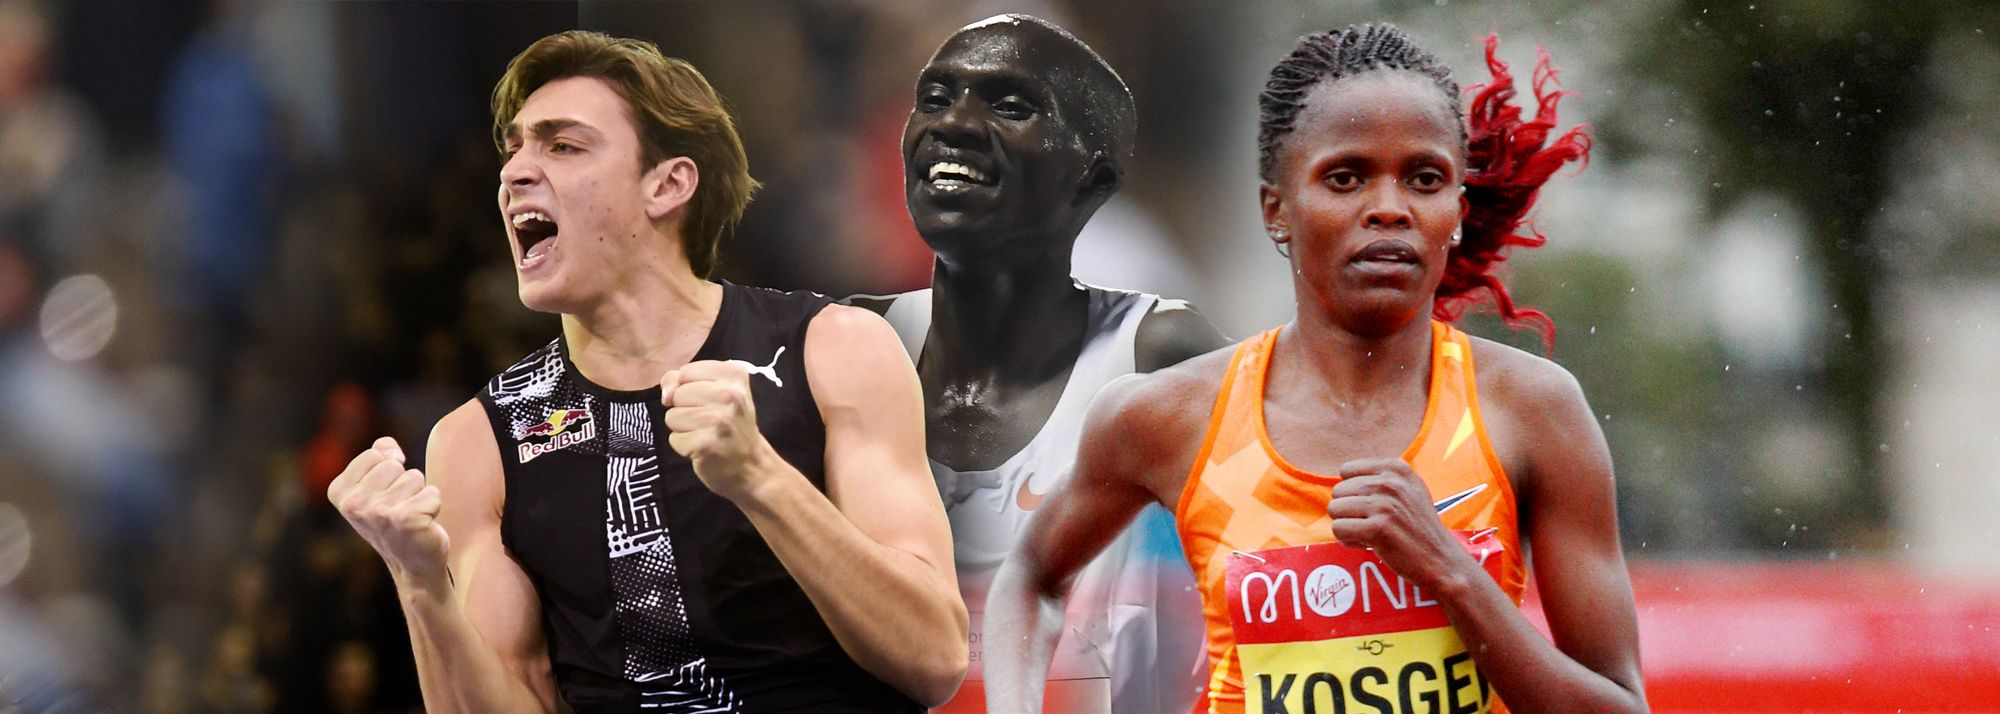 World record-holders Joshua Cheptegei, Mondo Duplantis and Brigid Kosgei are among the nominees for the Laureus World Sports Awards.